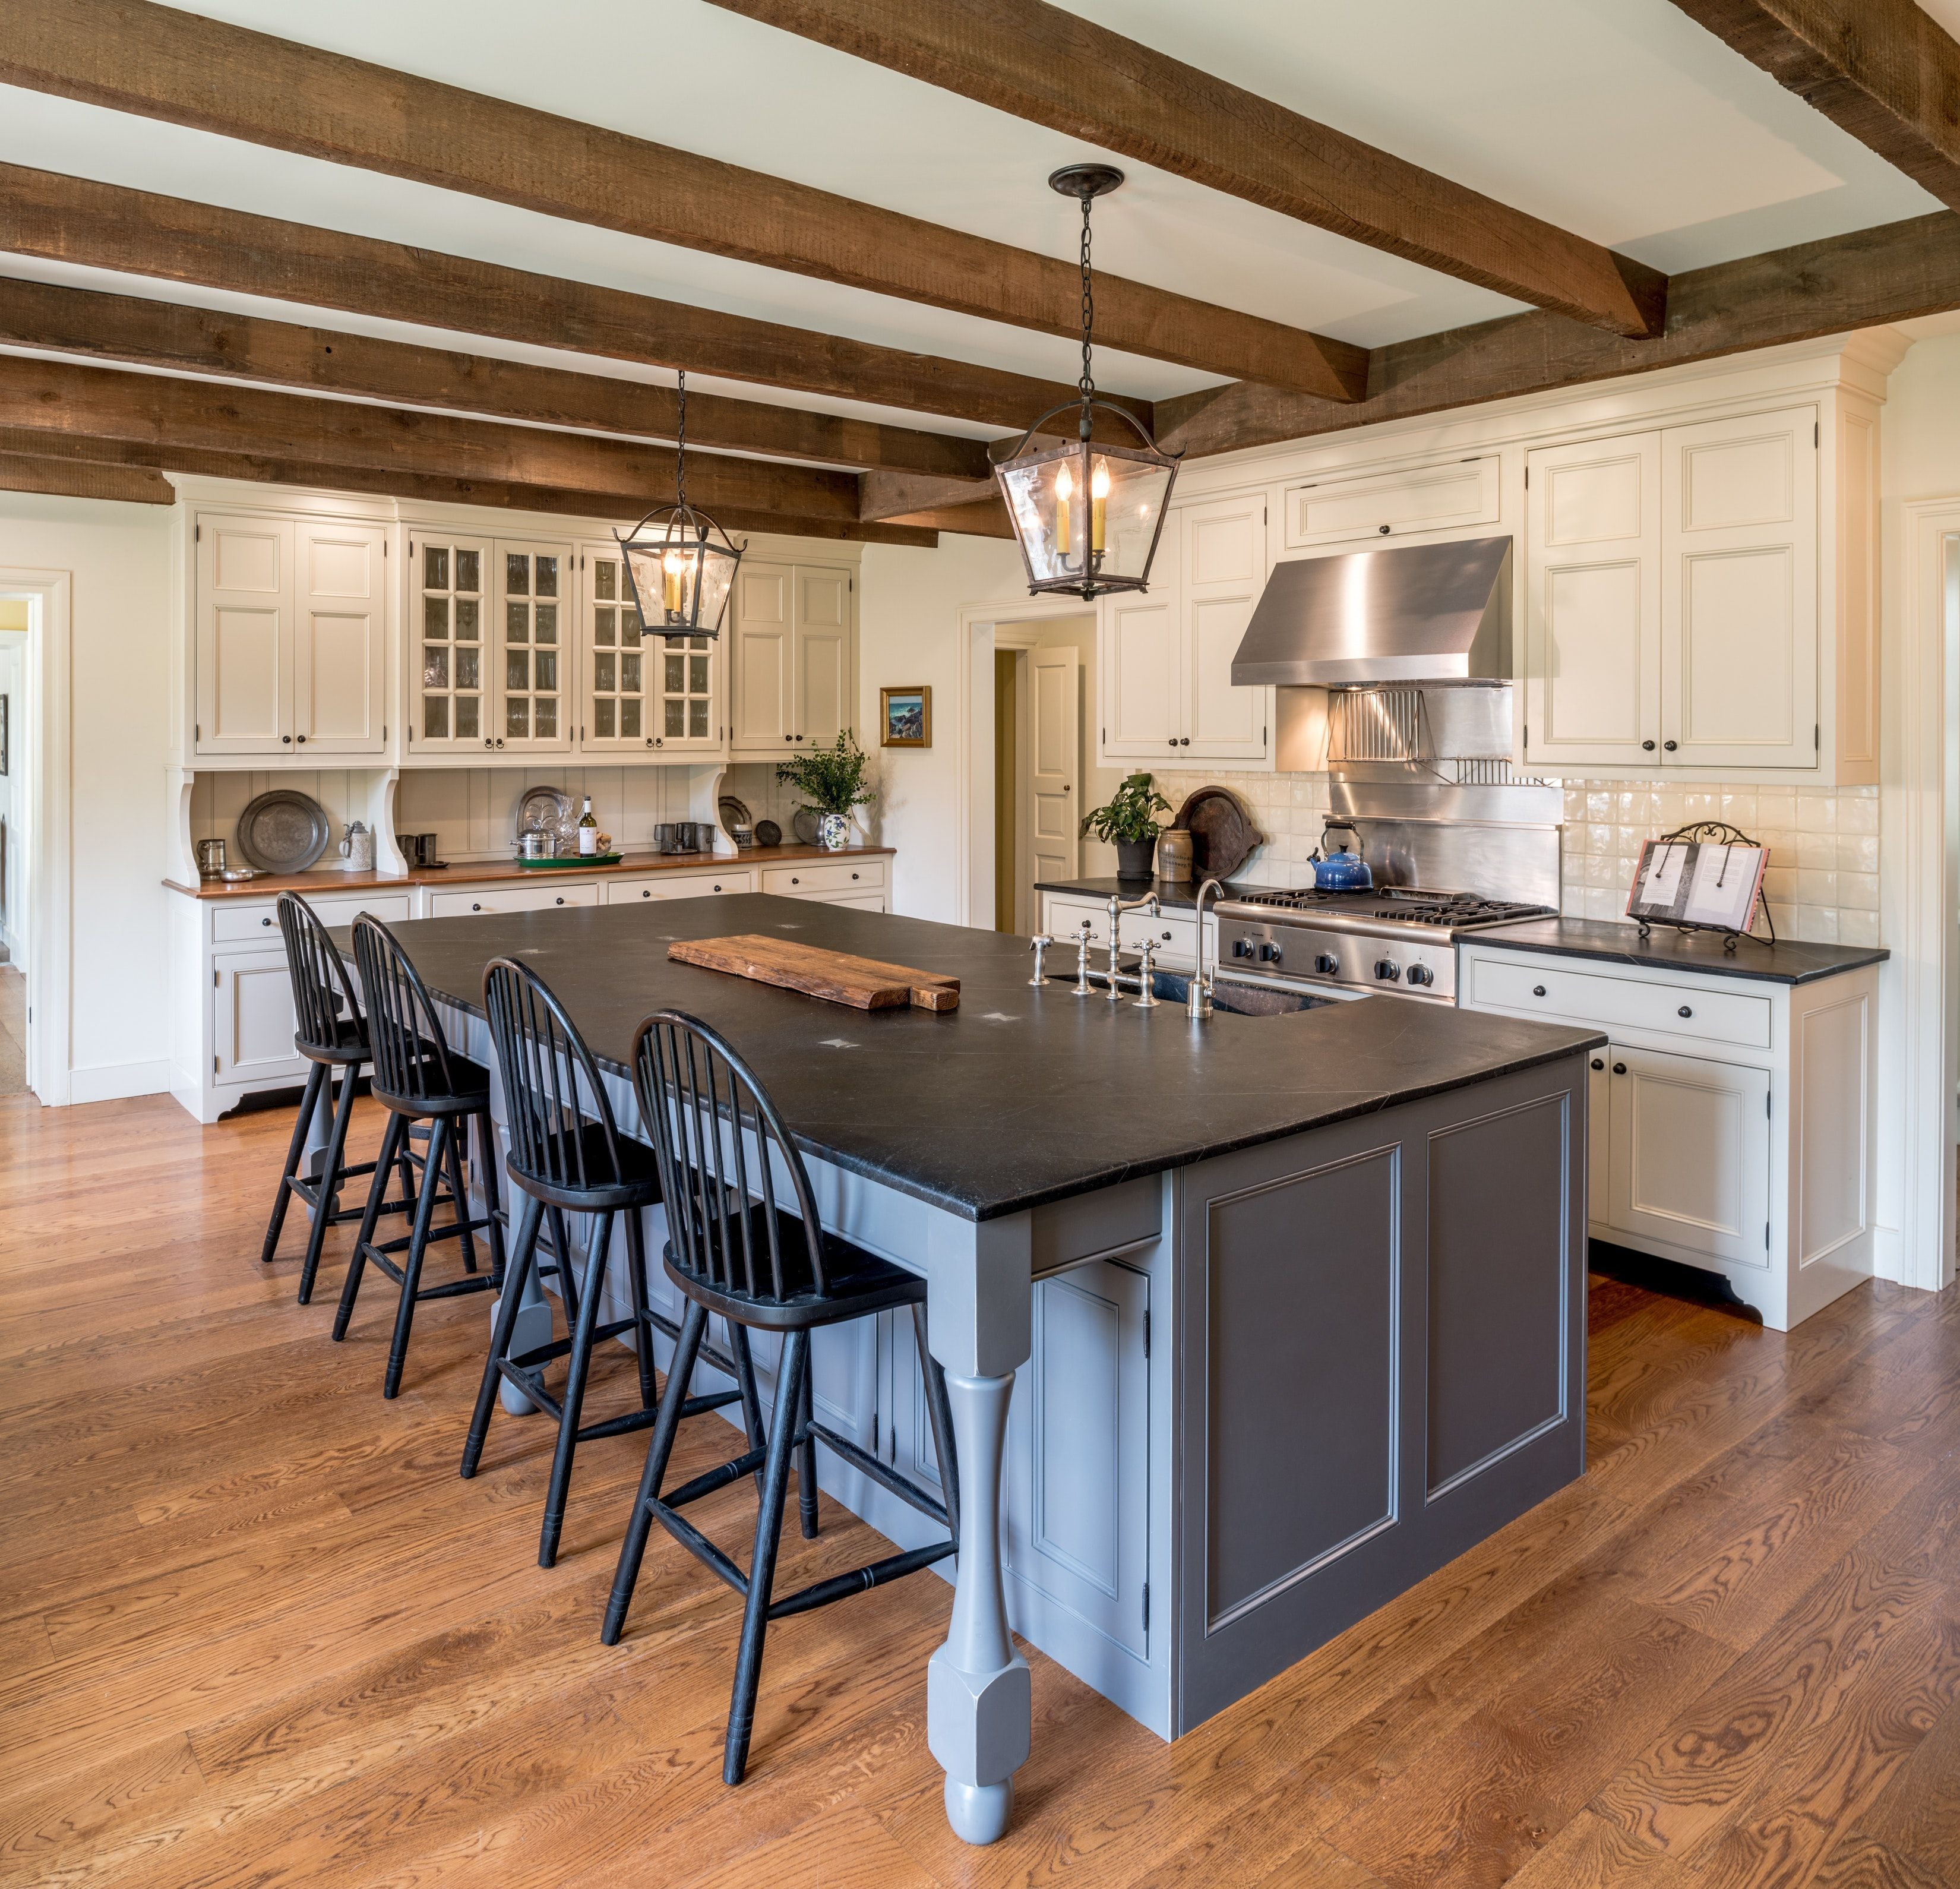 37 Nice Colonial Kitchen Decoration Ideas Hmdcrtn Kitchen Counter Decor Colonial Kitchen Kitchen Interior